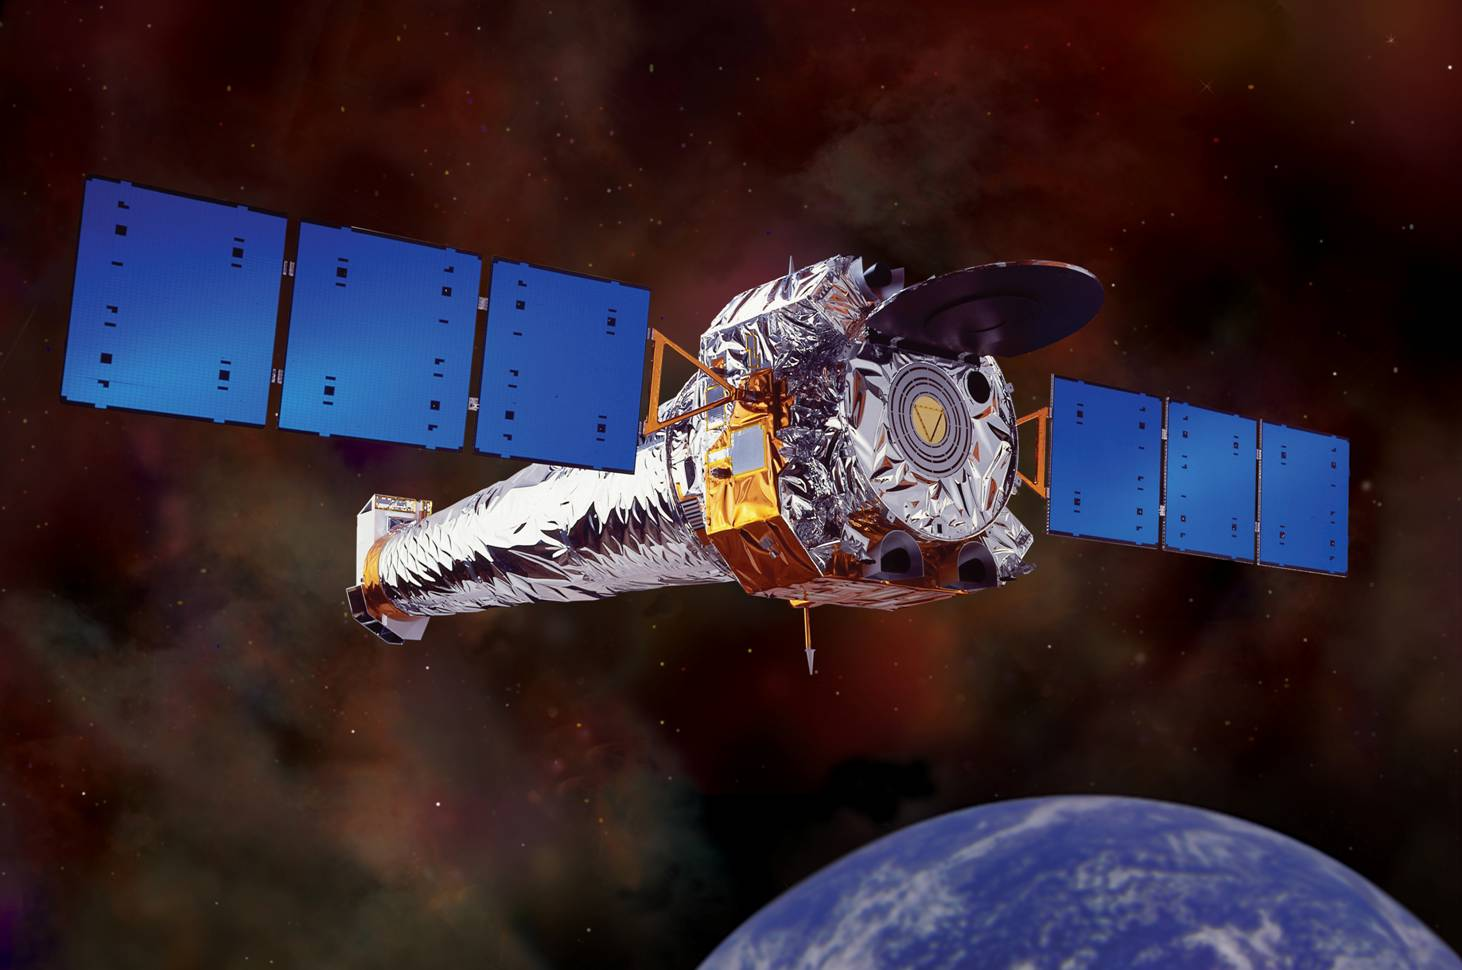 Chandra X-ray Observatory | NASA